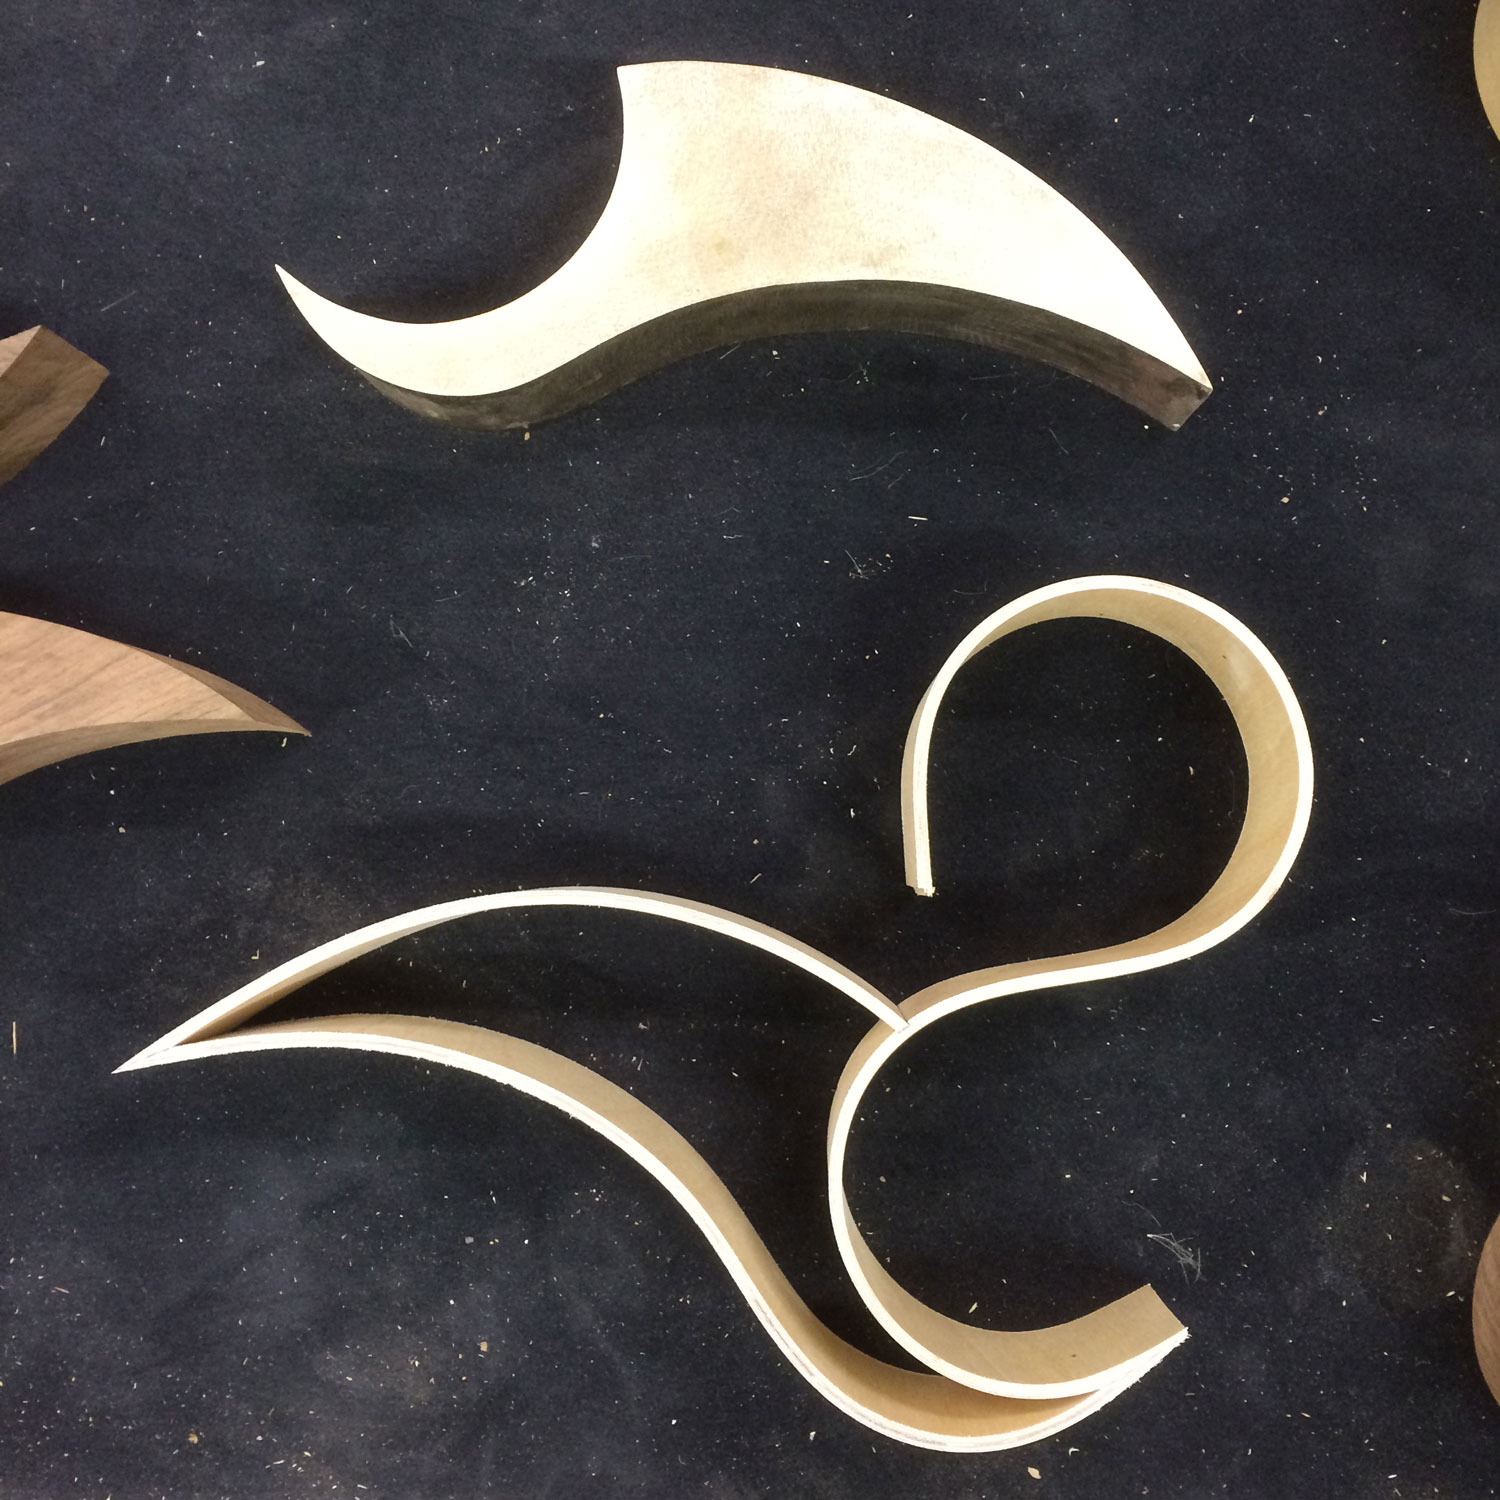 Designing the two components in wood and plywood to make the sculpture assembly